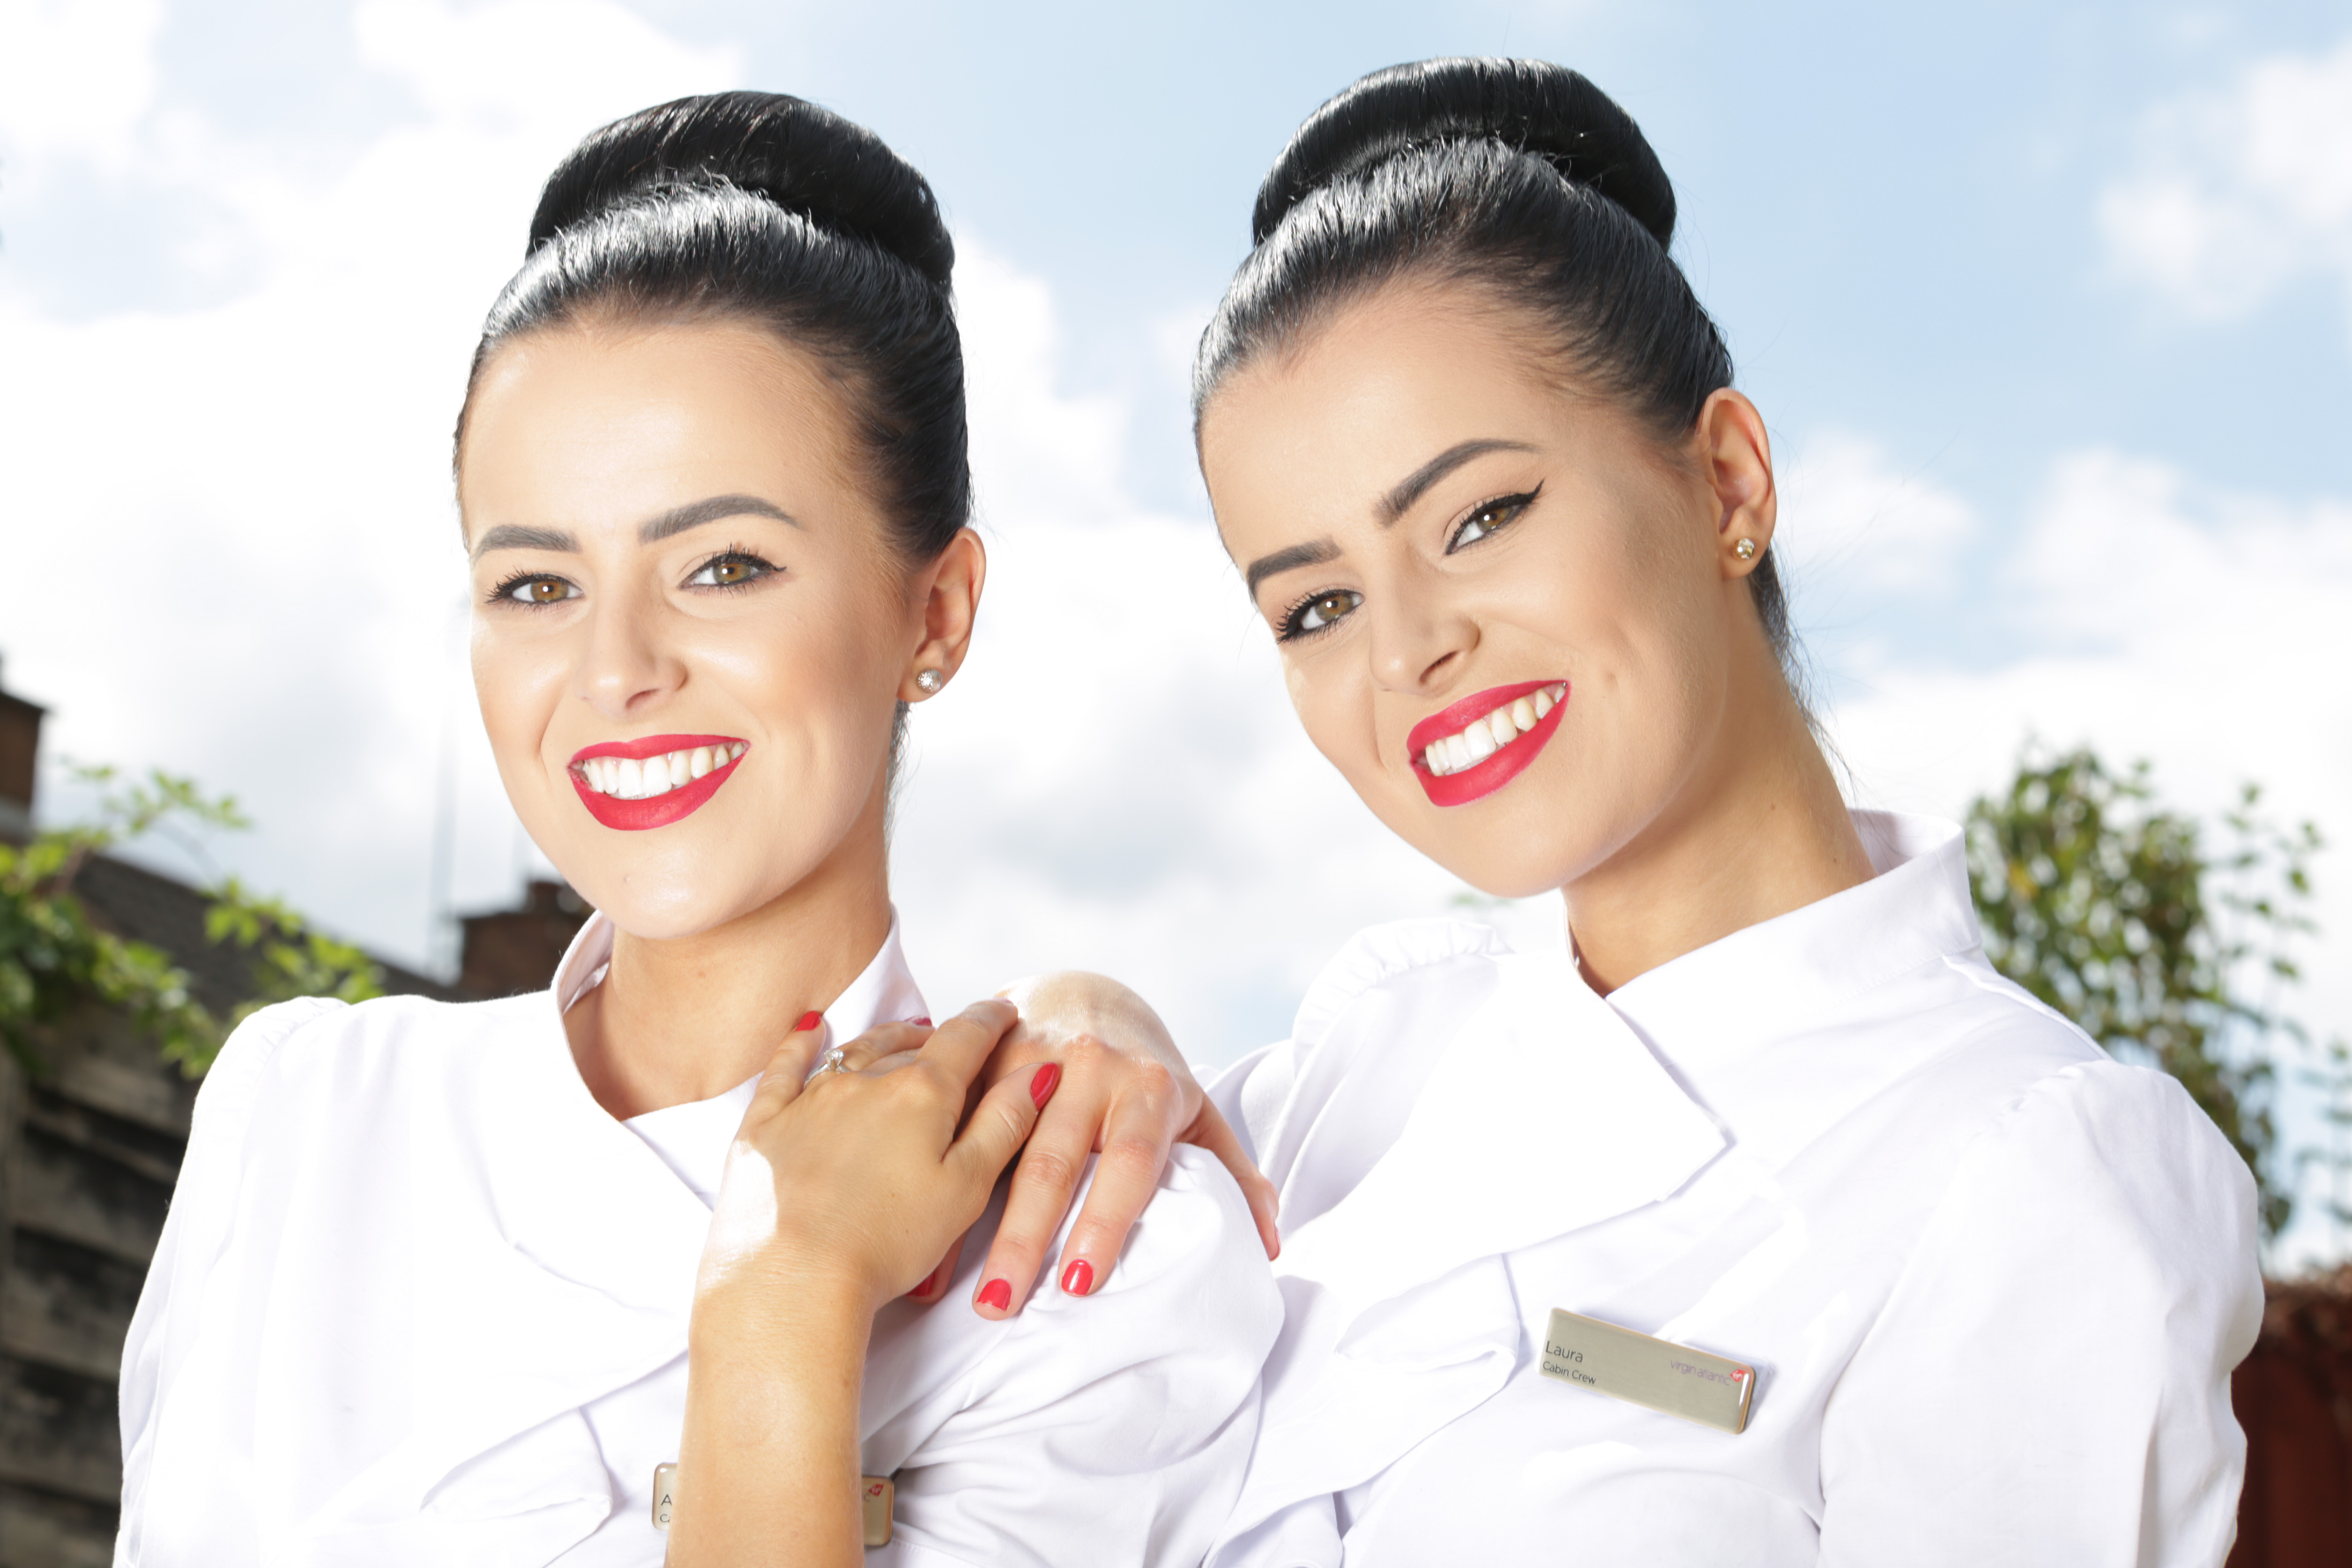 seeing double air hostess twins opt to lead identical lives by